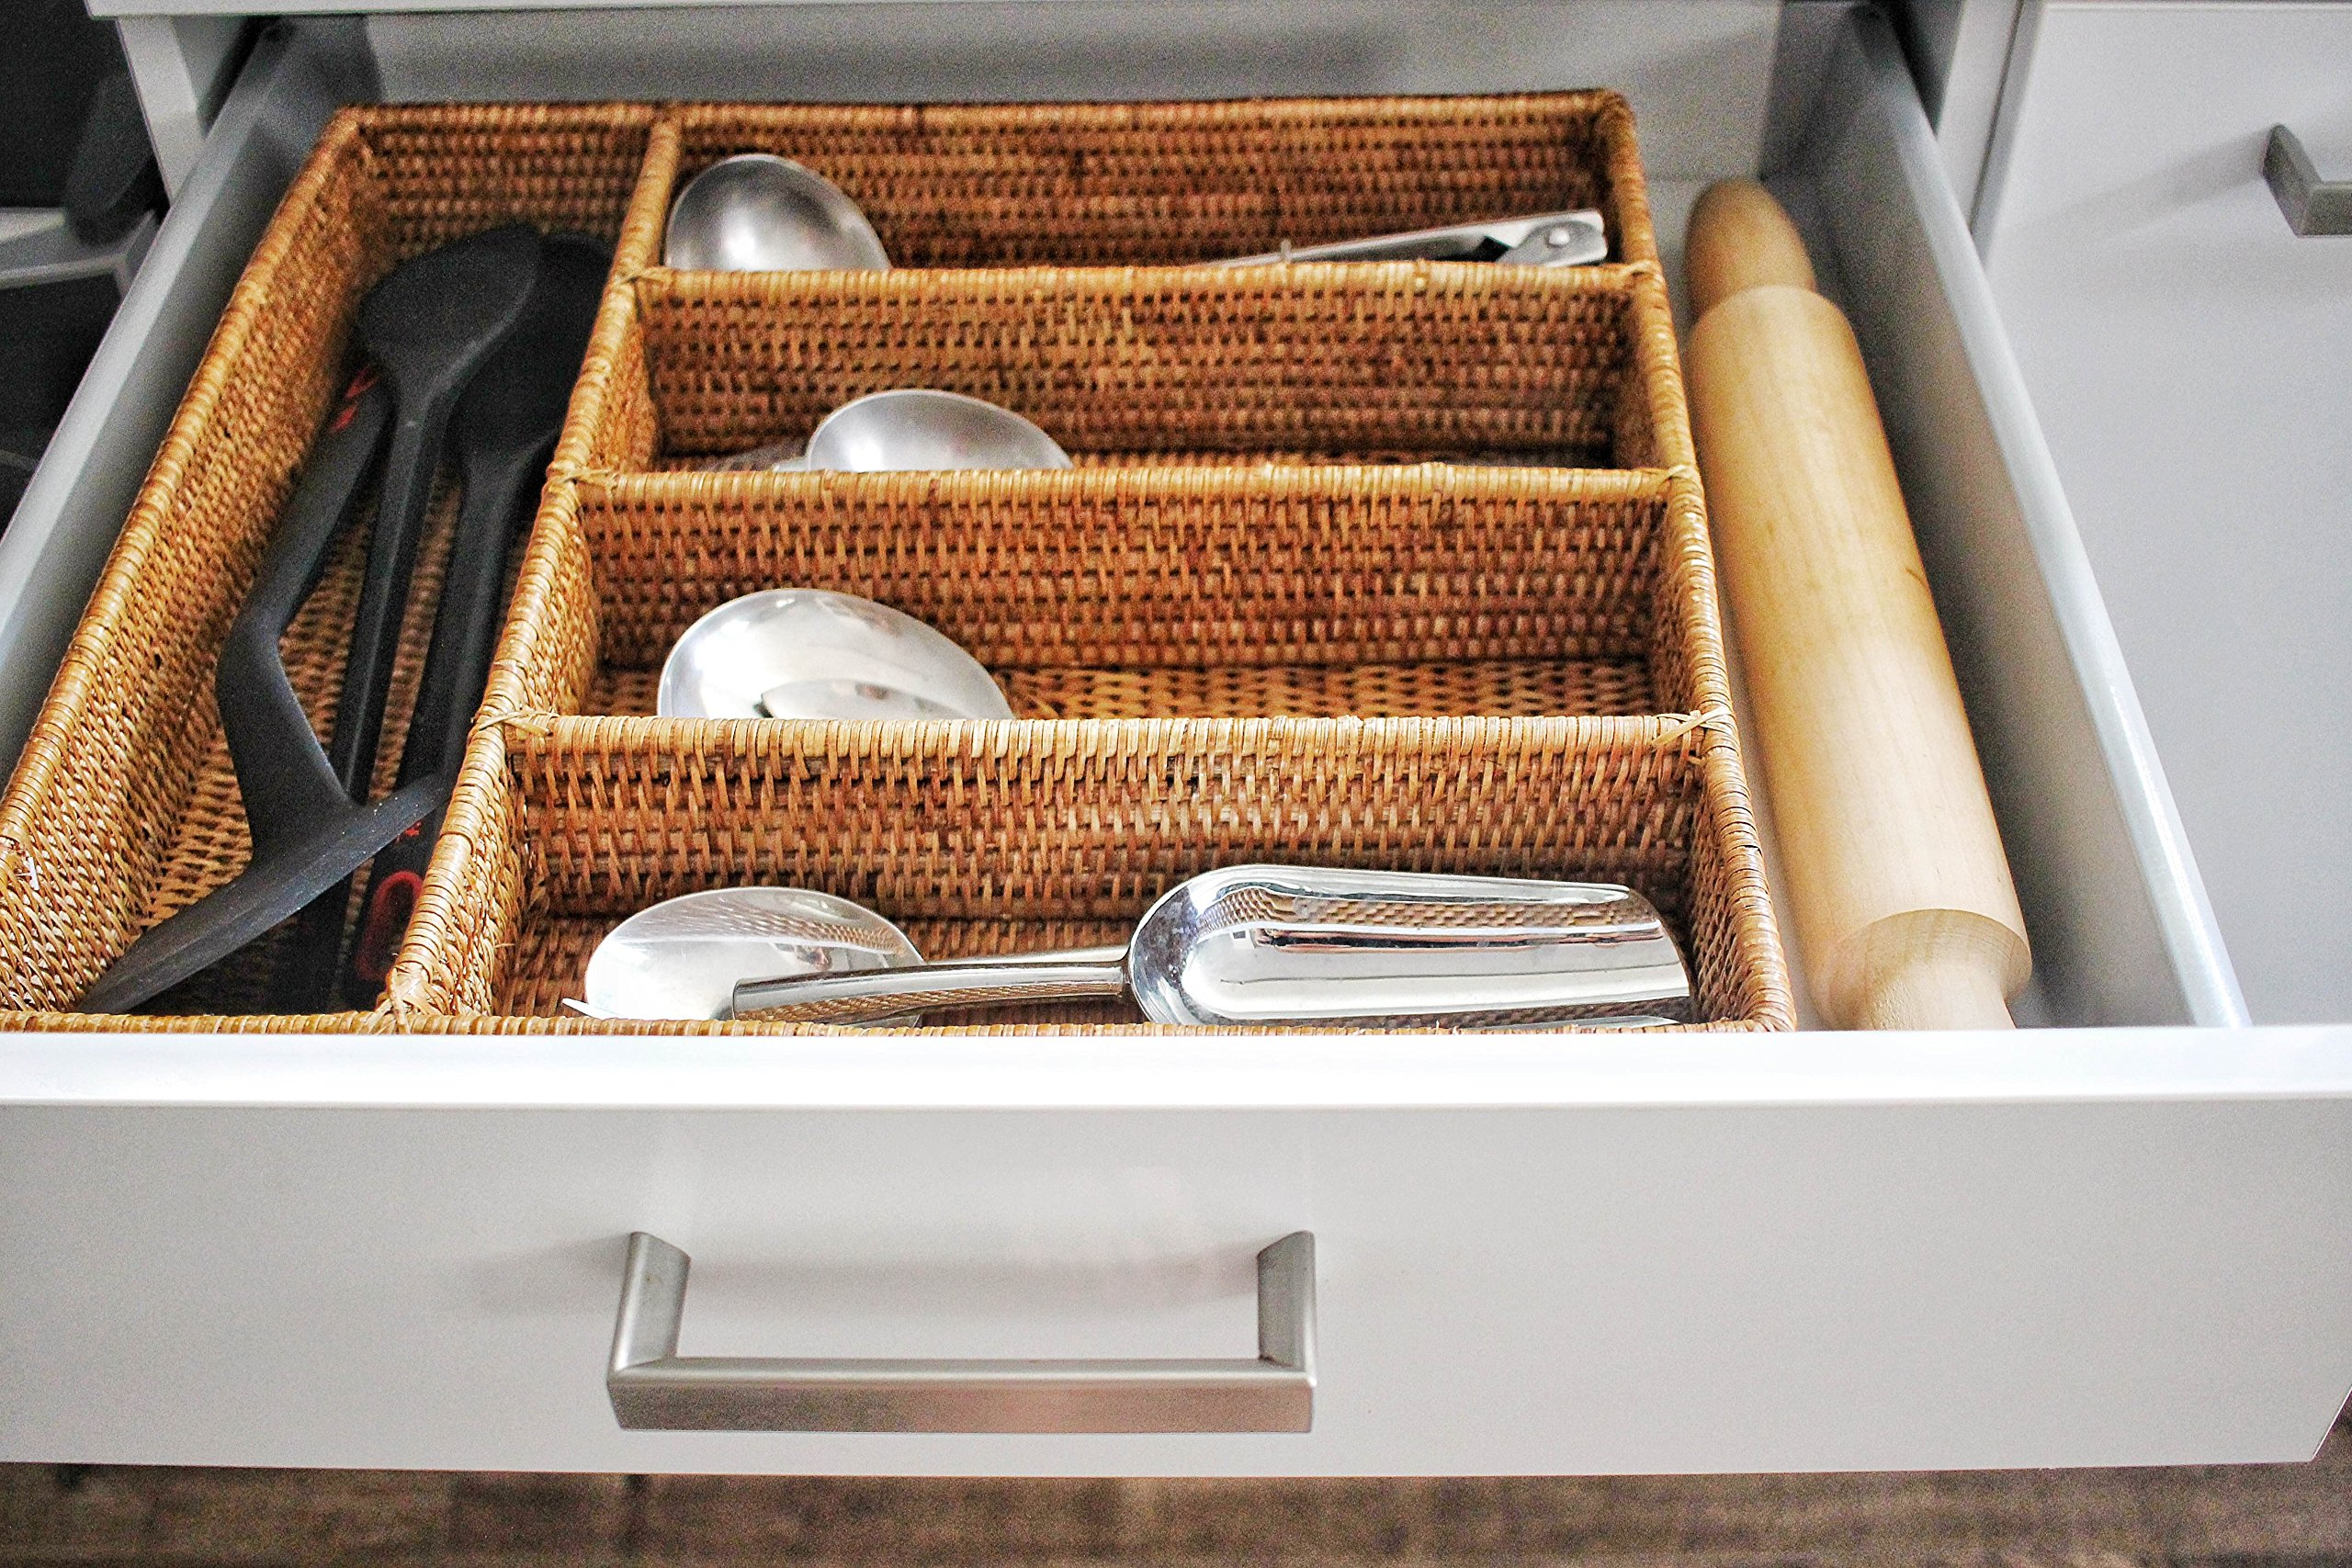 Artifacts Trading Company Rattan 5 Section Cutlery Tray, 16'' L x 15'' W x 3'' H by Artifacts Trading Company (Image #4)